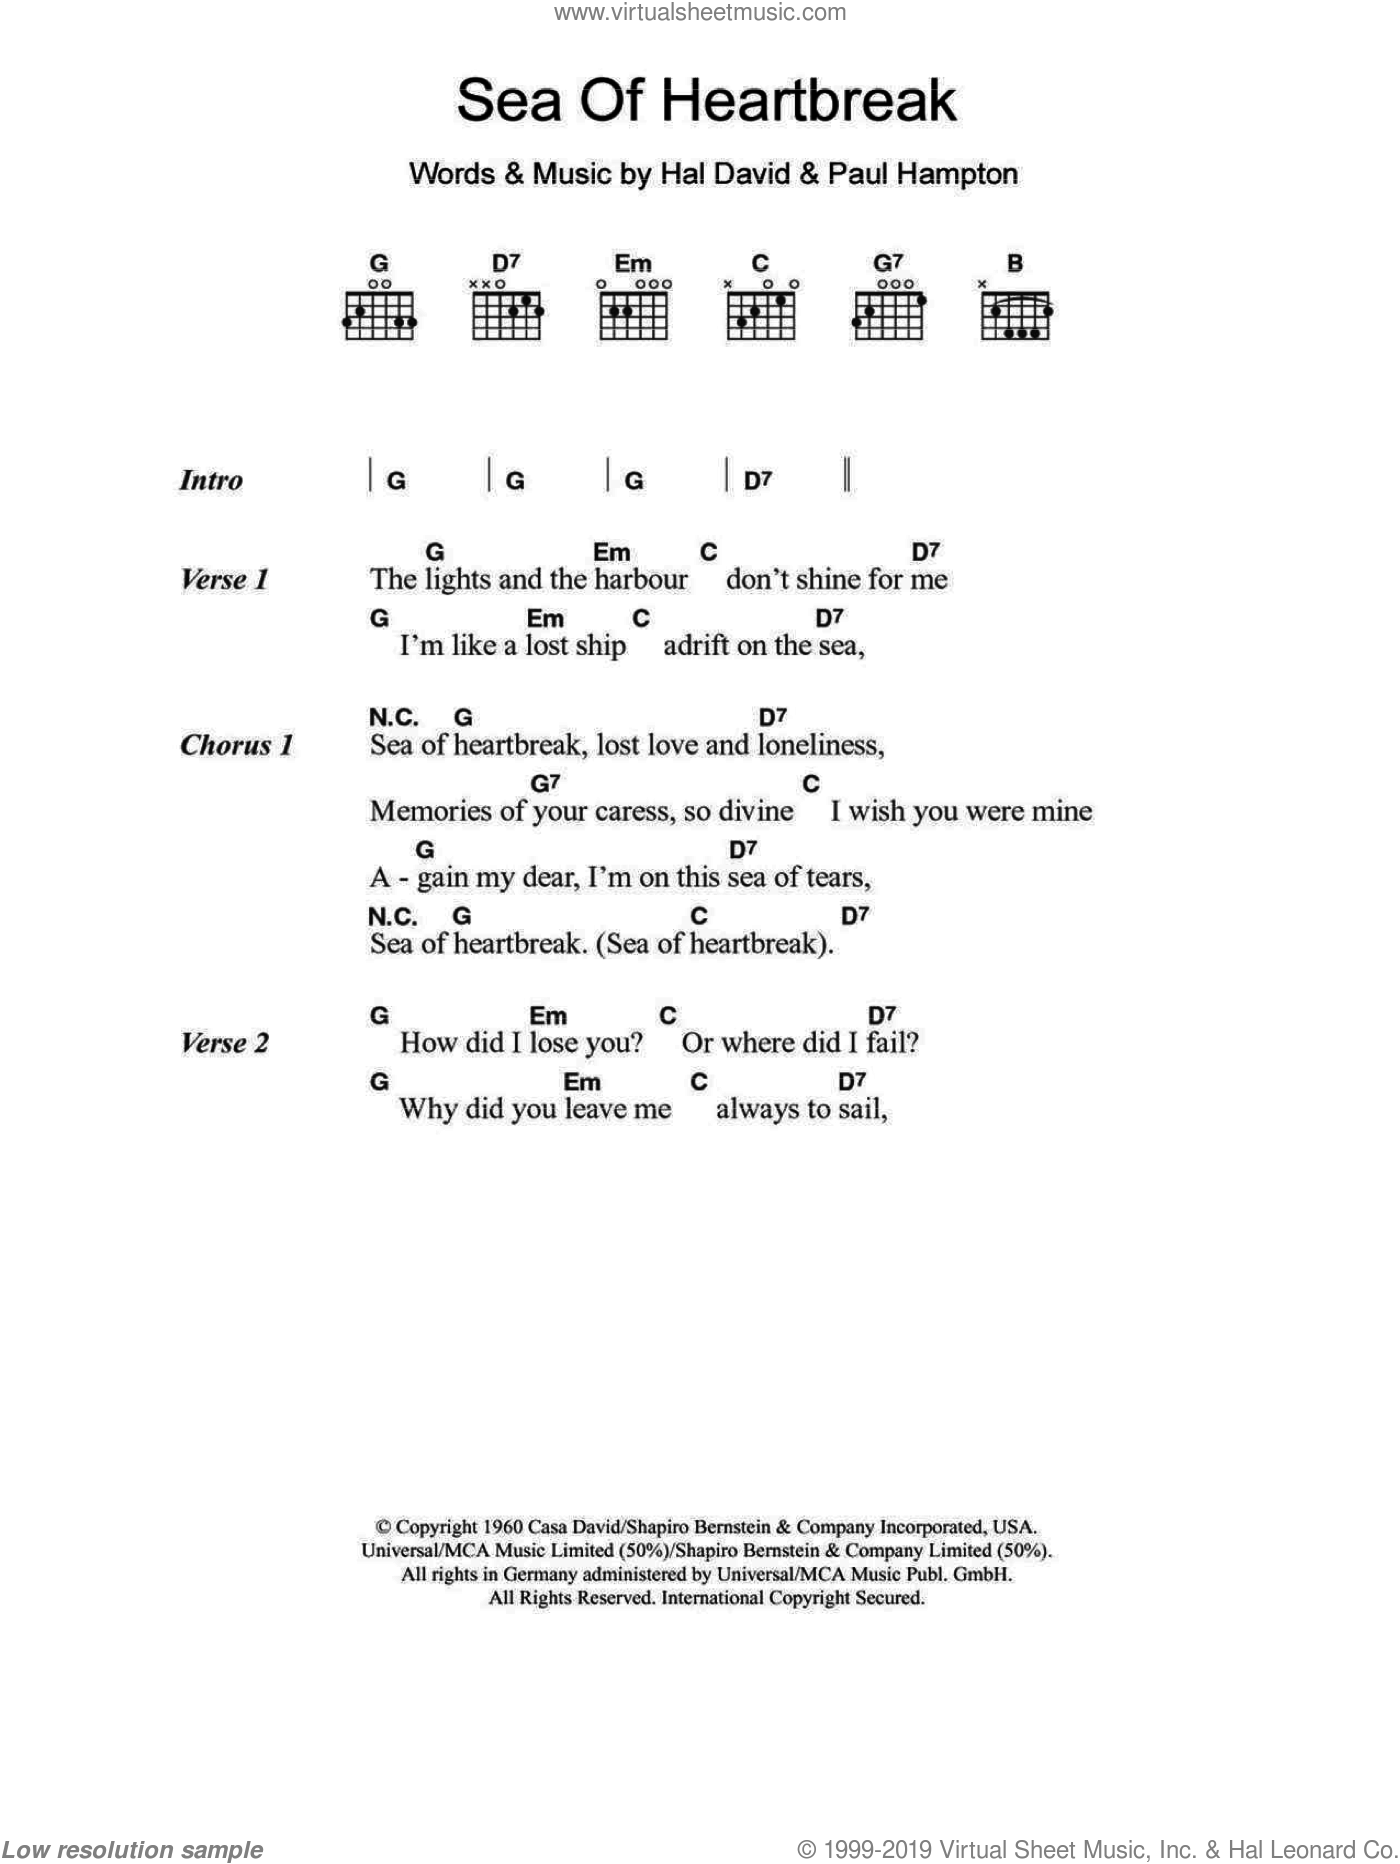 Sea Of Heartbreak sheet music for guitar (chords) by Don Gibson, Hal David and Paul Hampton, intermediate. Score Image Preview.